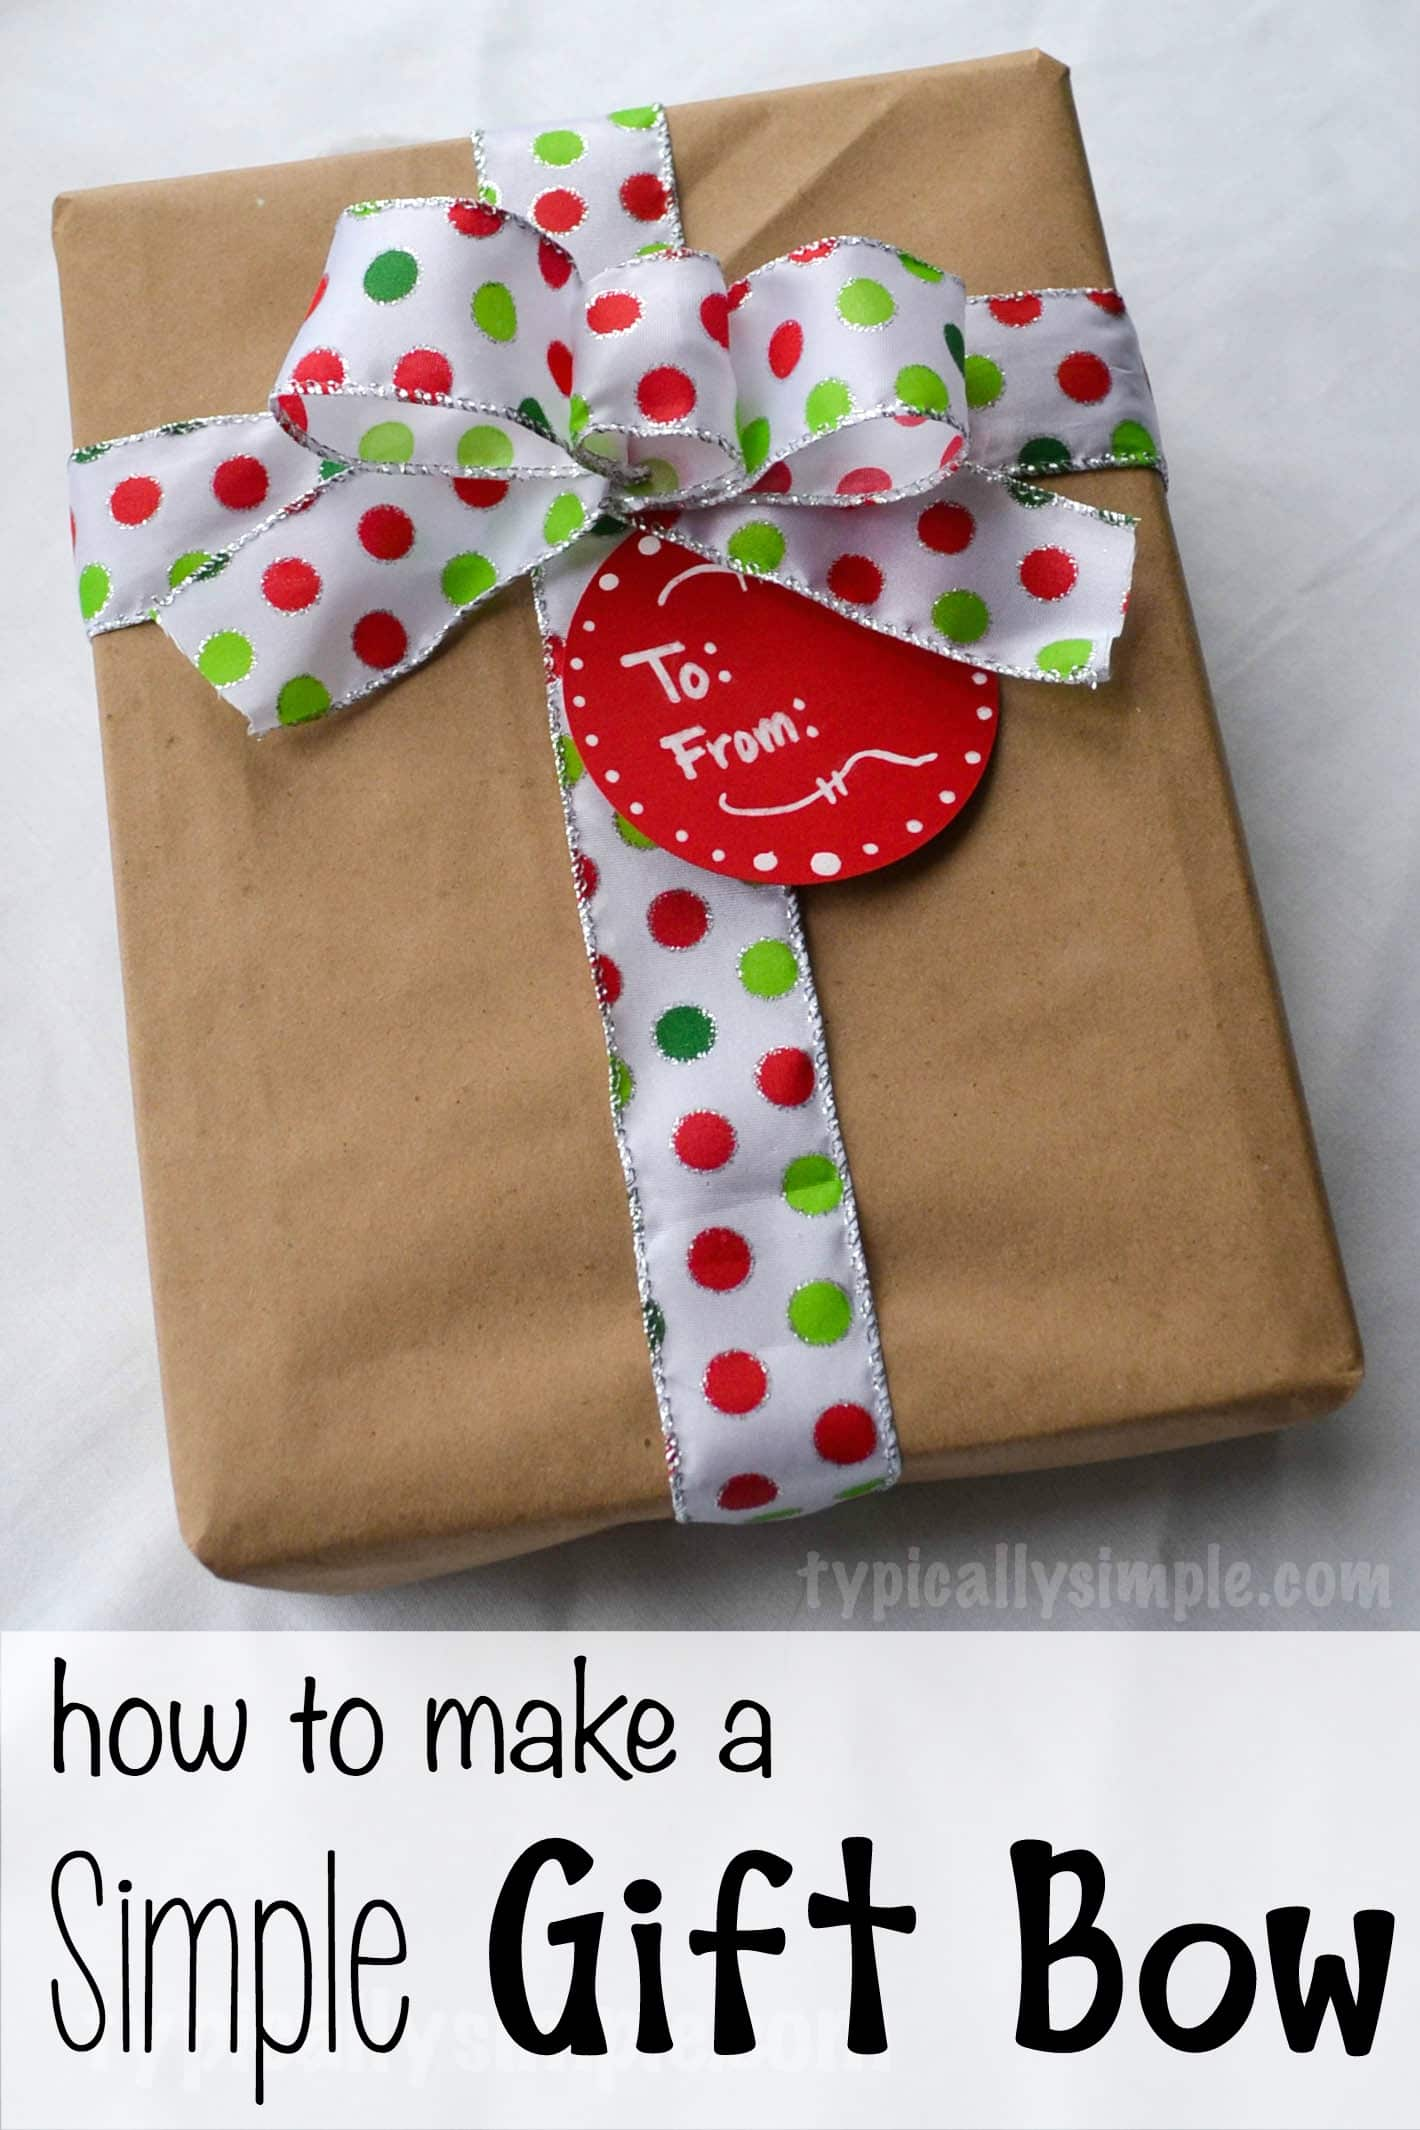 How to Make a Simple Gift Bow - Typically Simple